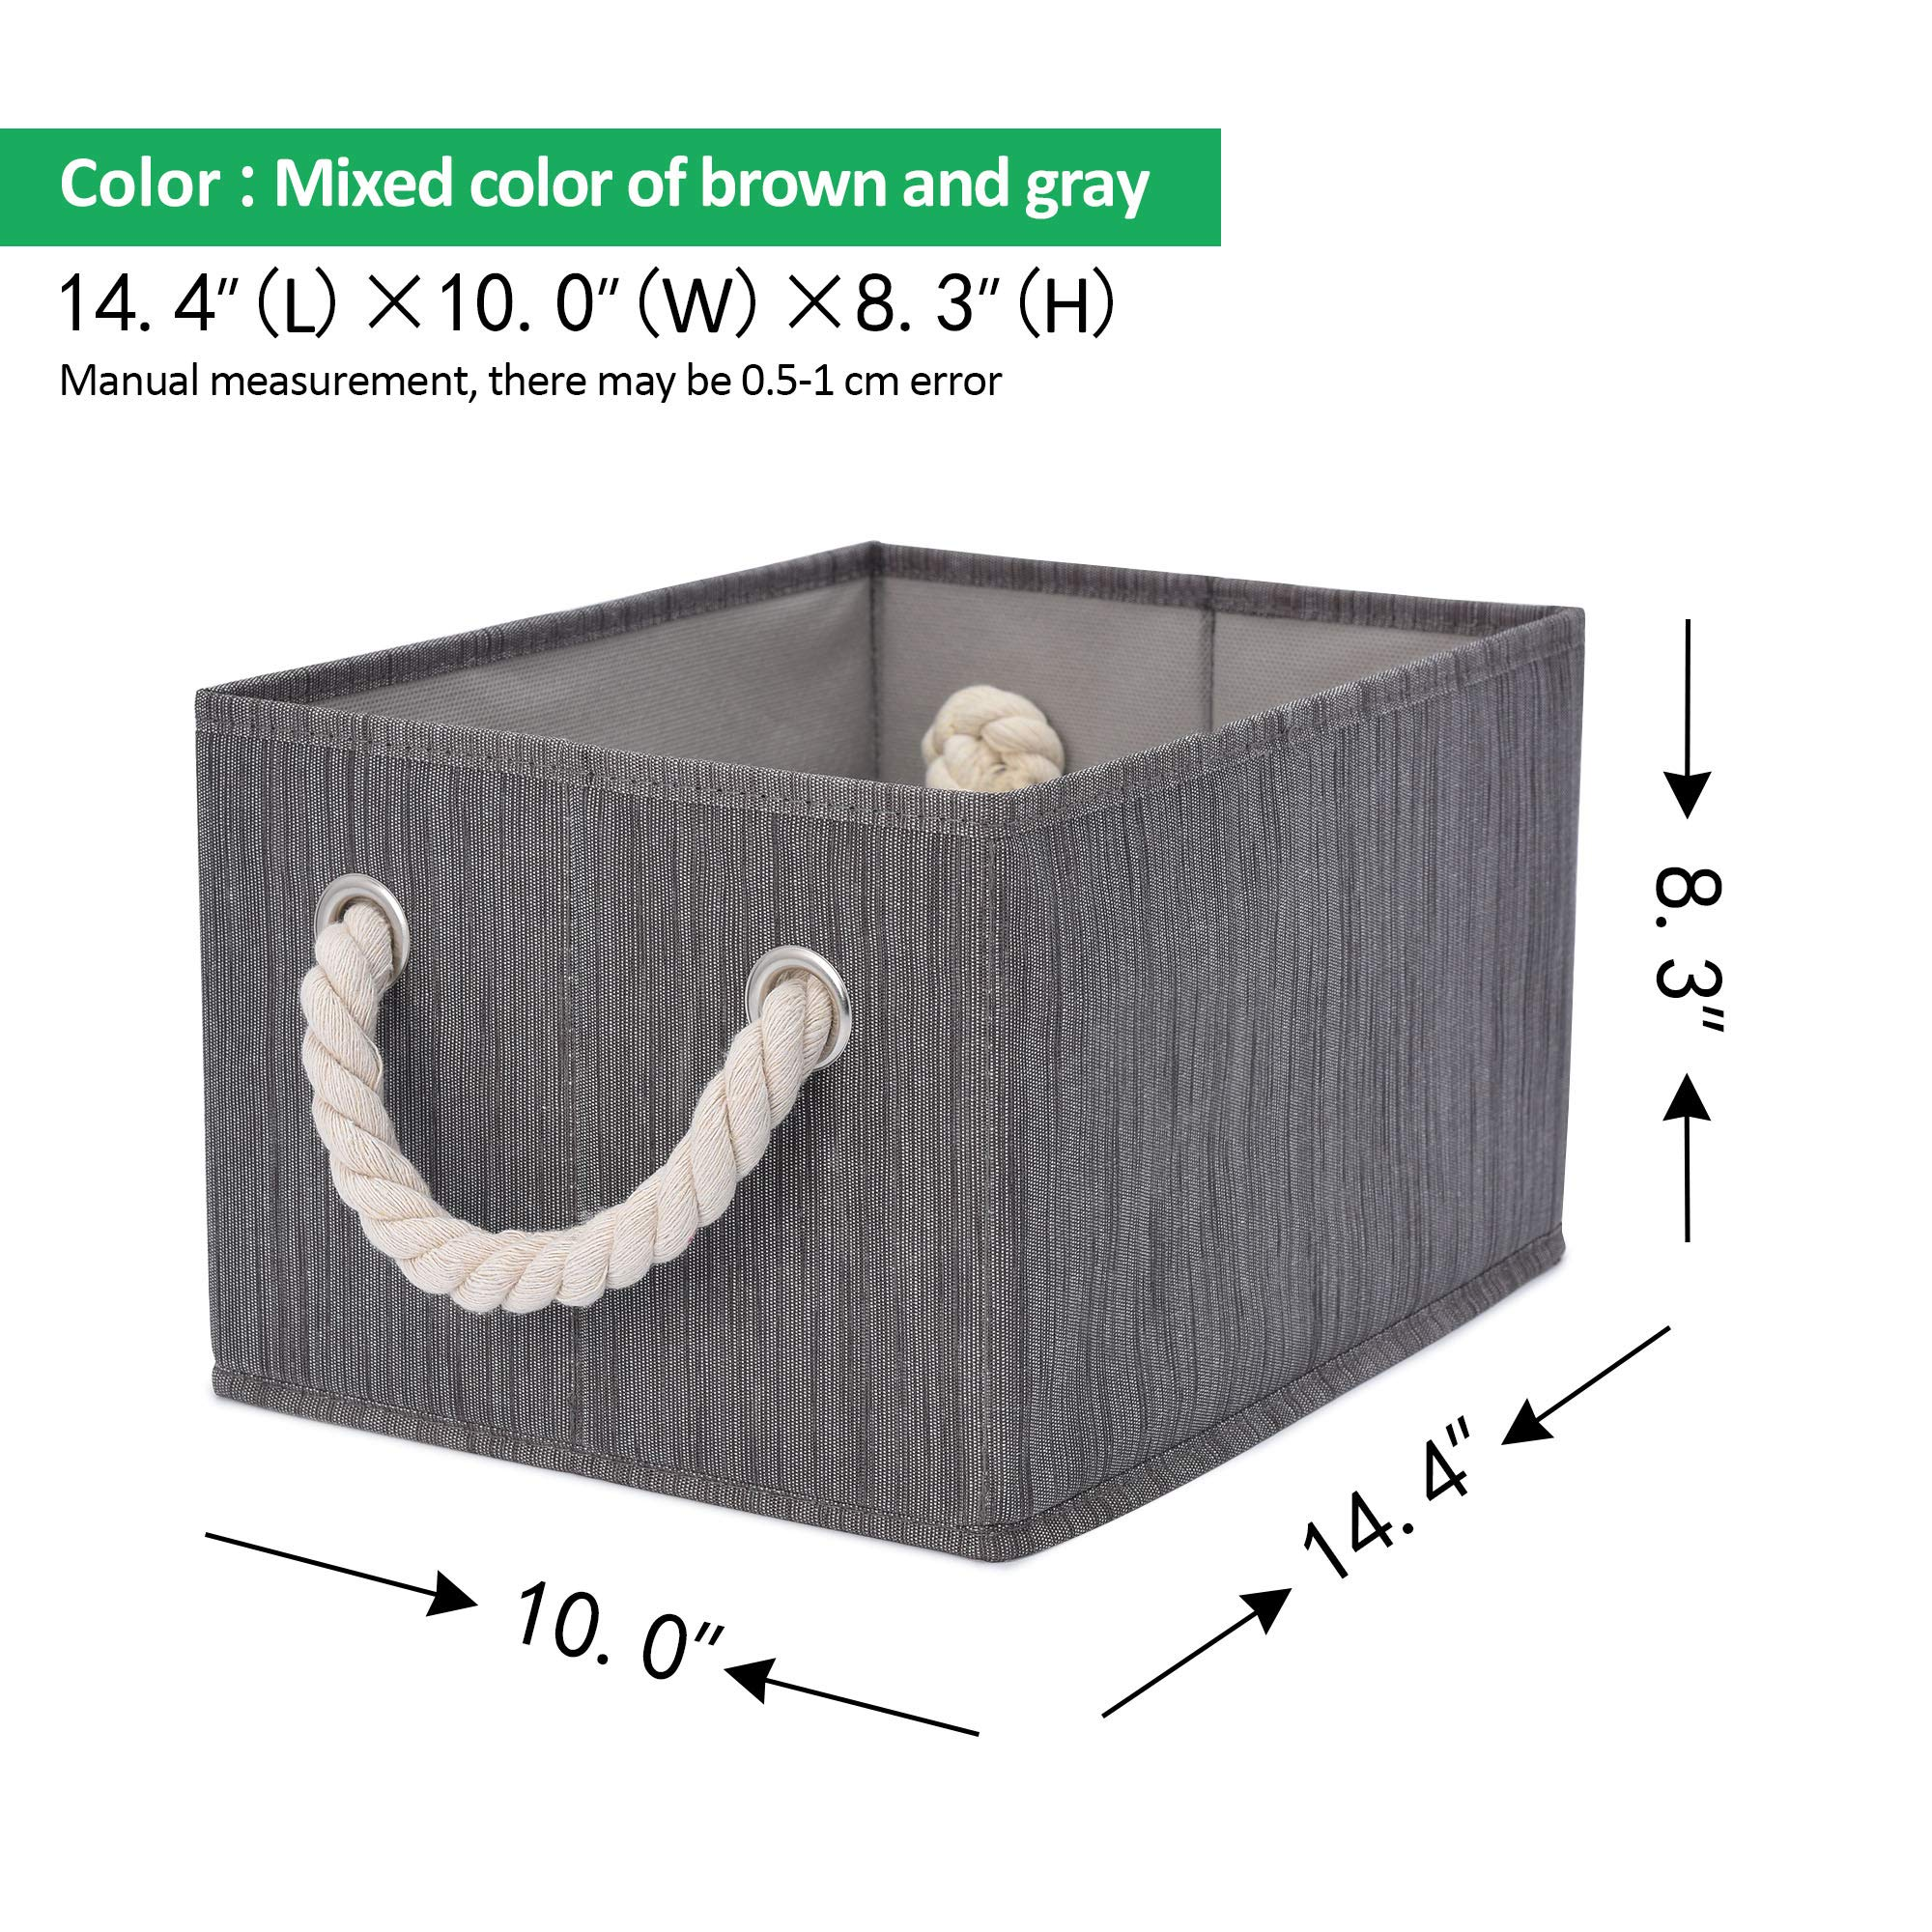 StorageWorks Decorative Storage Bins with Cotton Rope Handles, Foldable Storage Basket, Taupe, Bamboo Style, 3-Pack, Large,14.4x10.0x8.3 inches (LxWxH) by StorageWorks (Image #9)